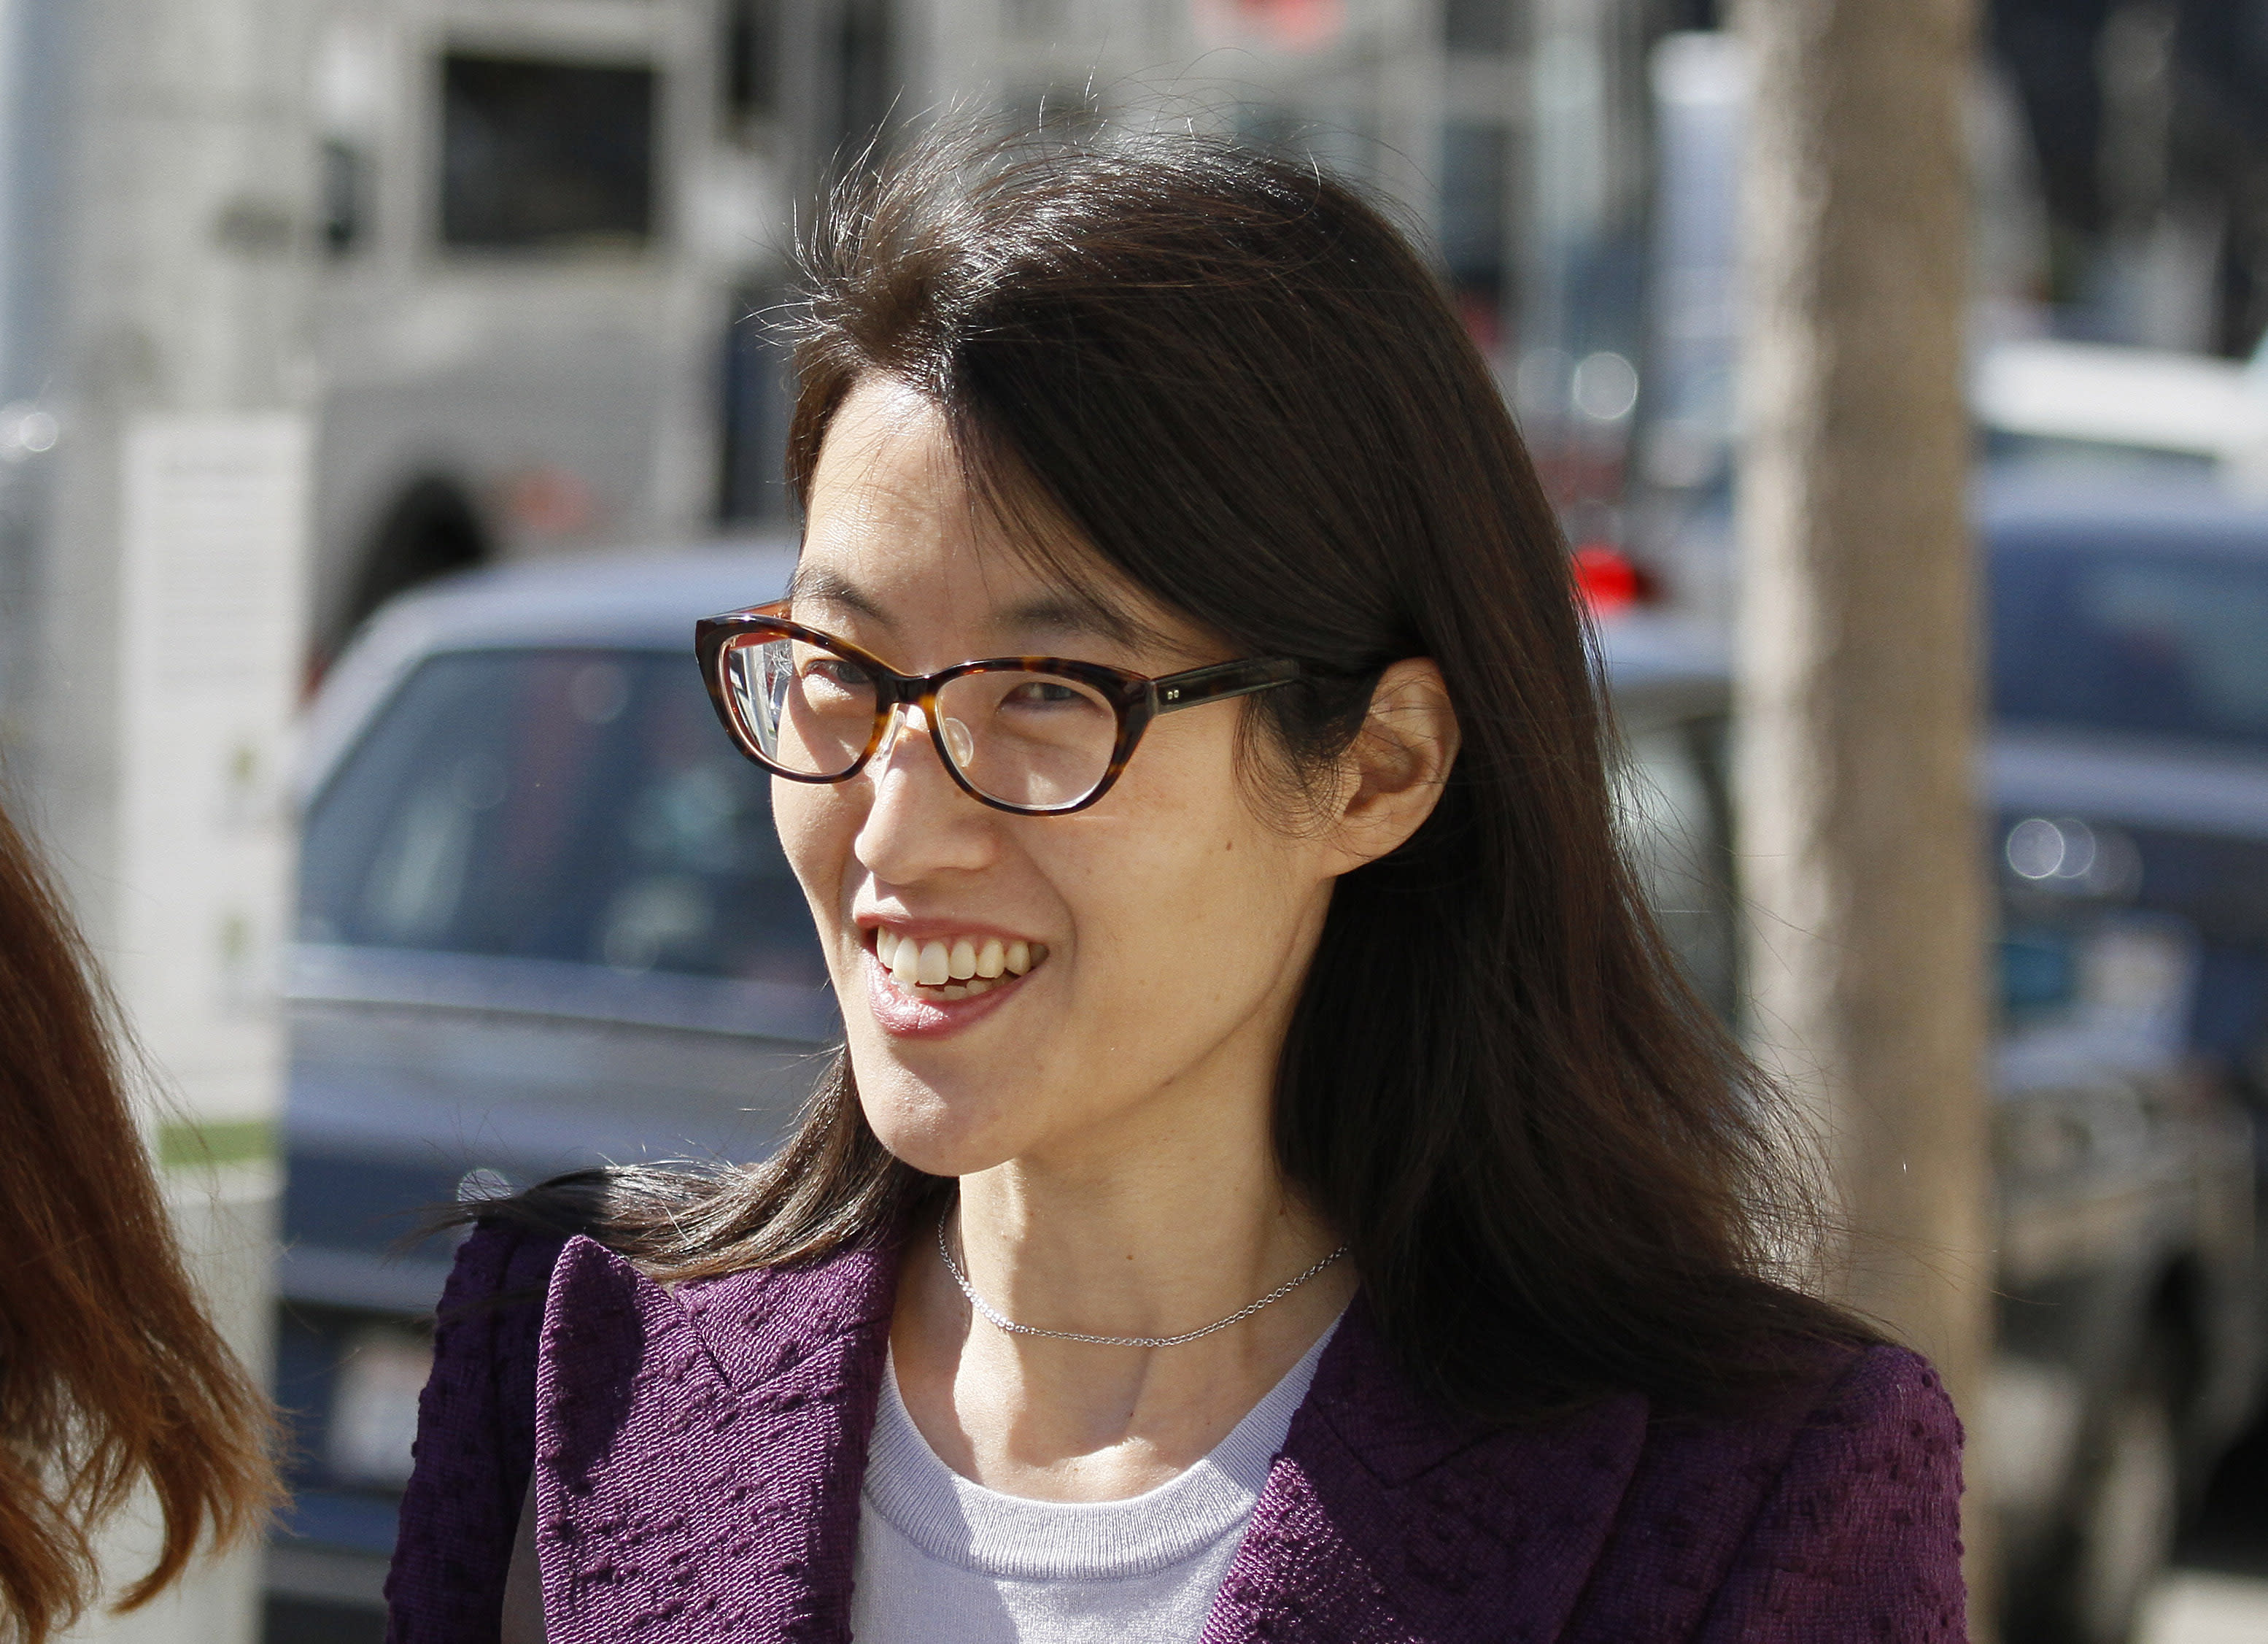 Is Ellen Pao the right poster child for gender-bias case?